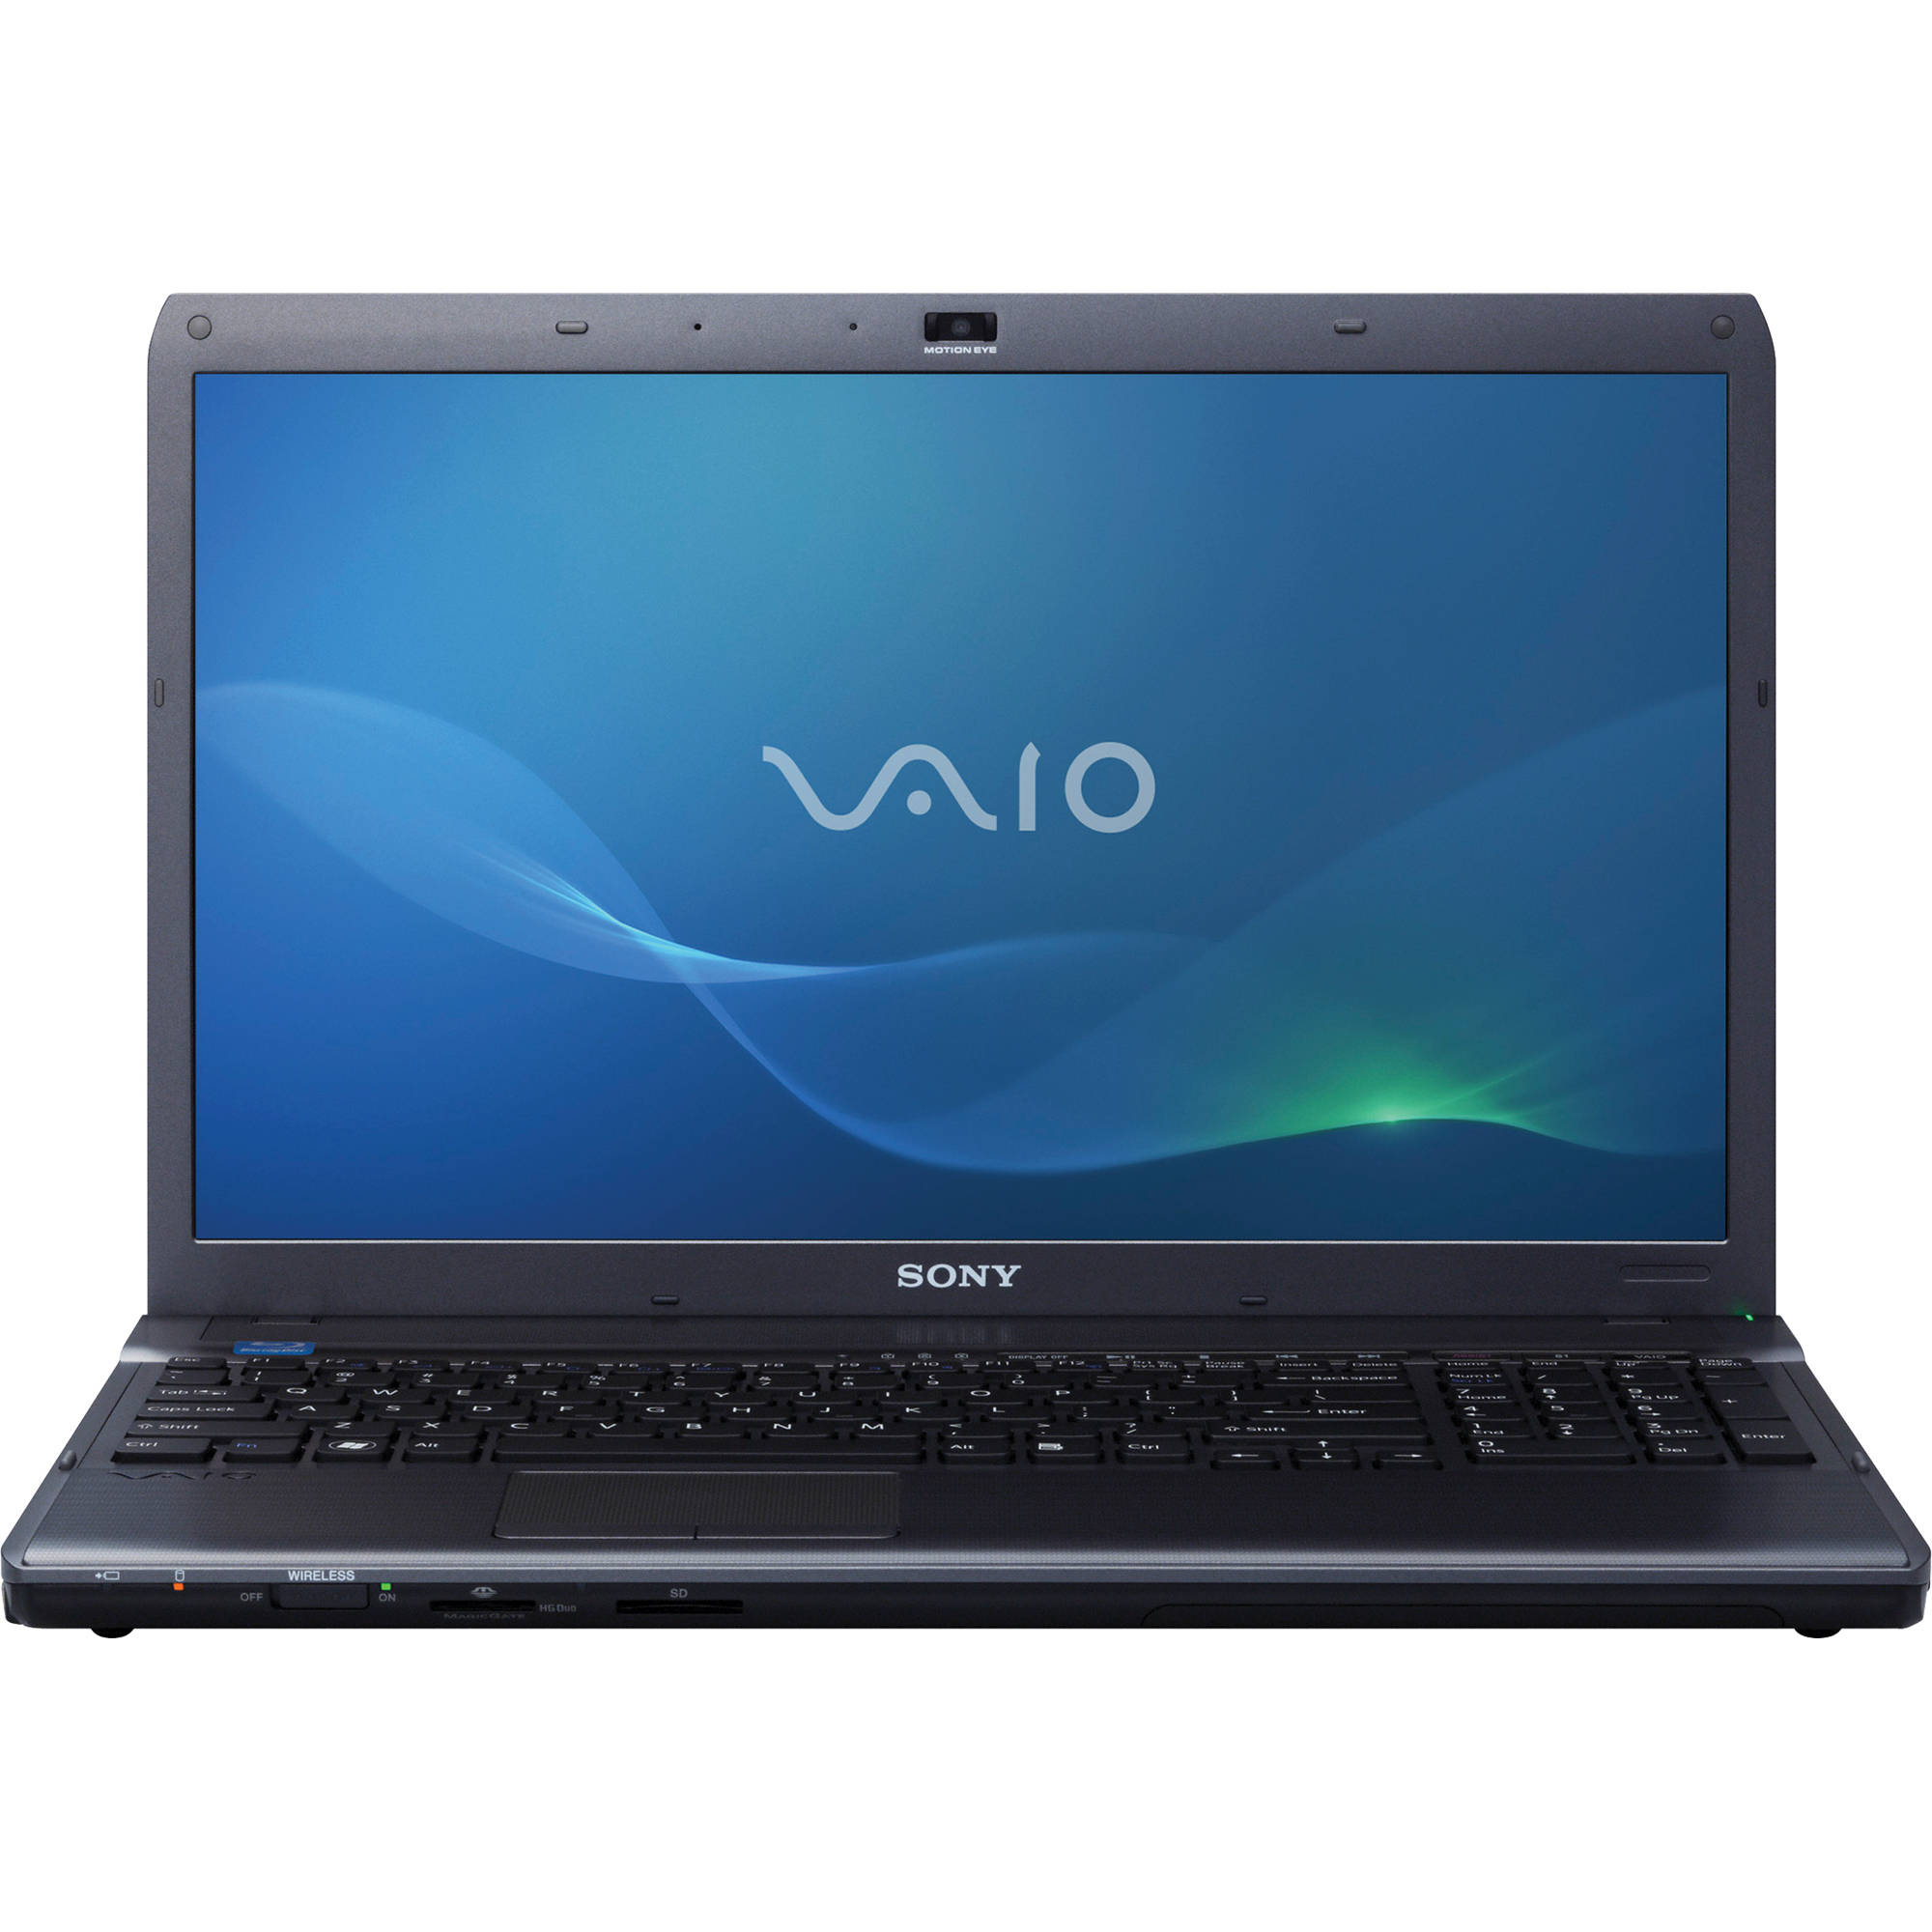 Sony Vaio VPCF13YFX/H Smart Network Treiber Windows 10